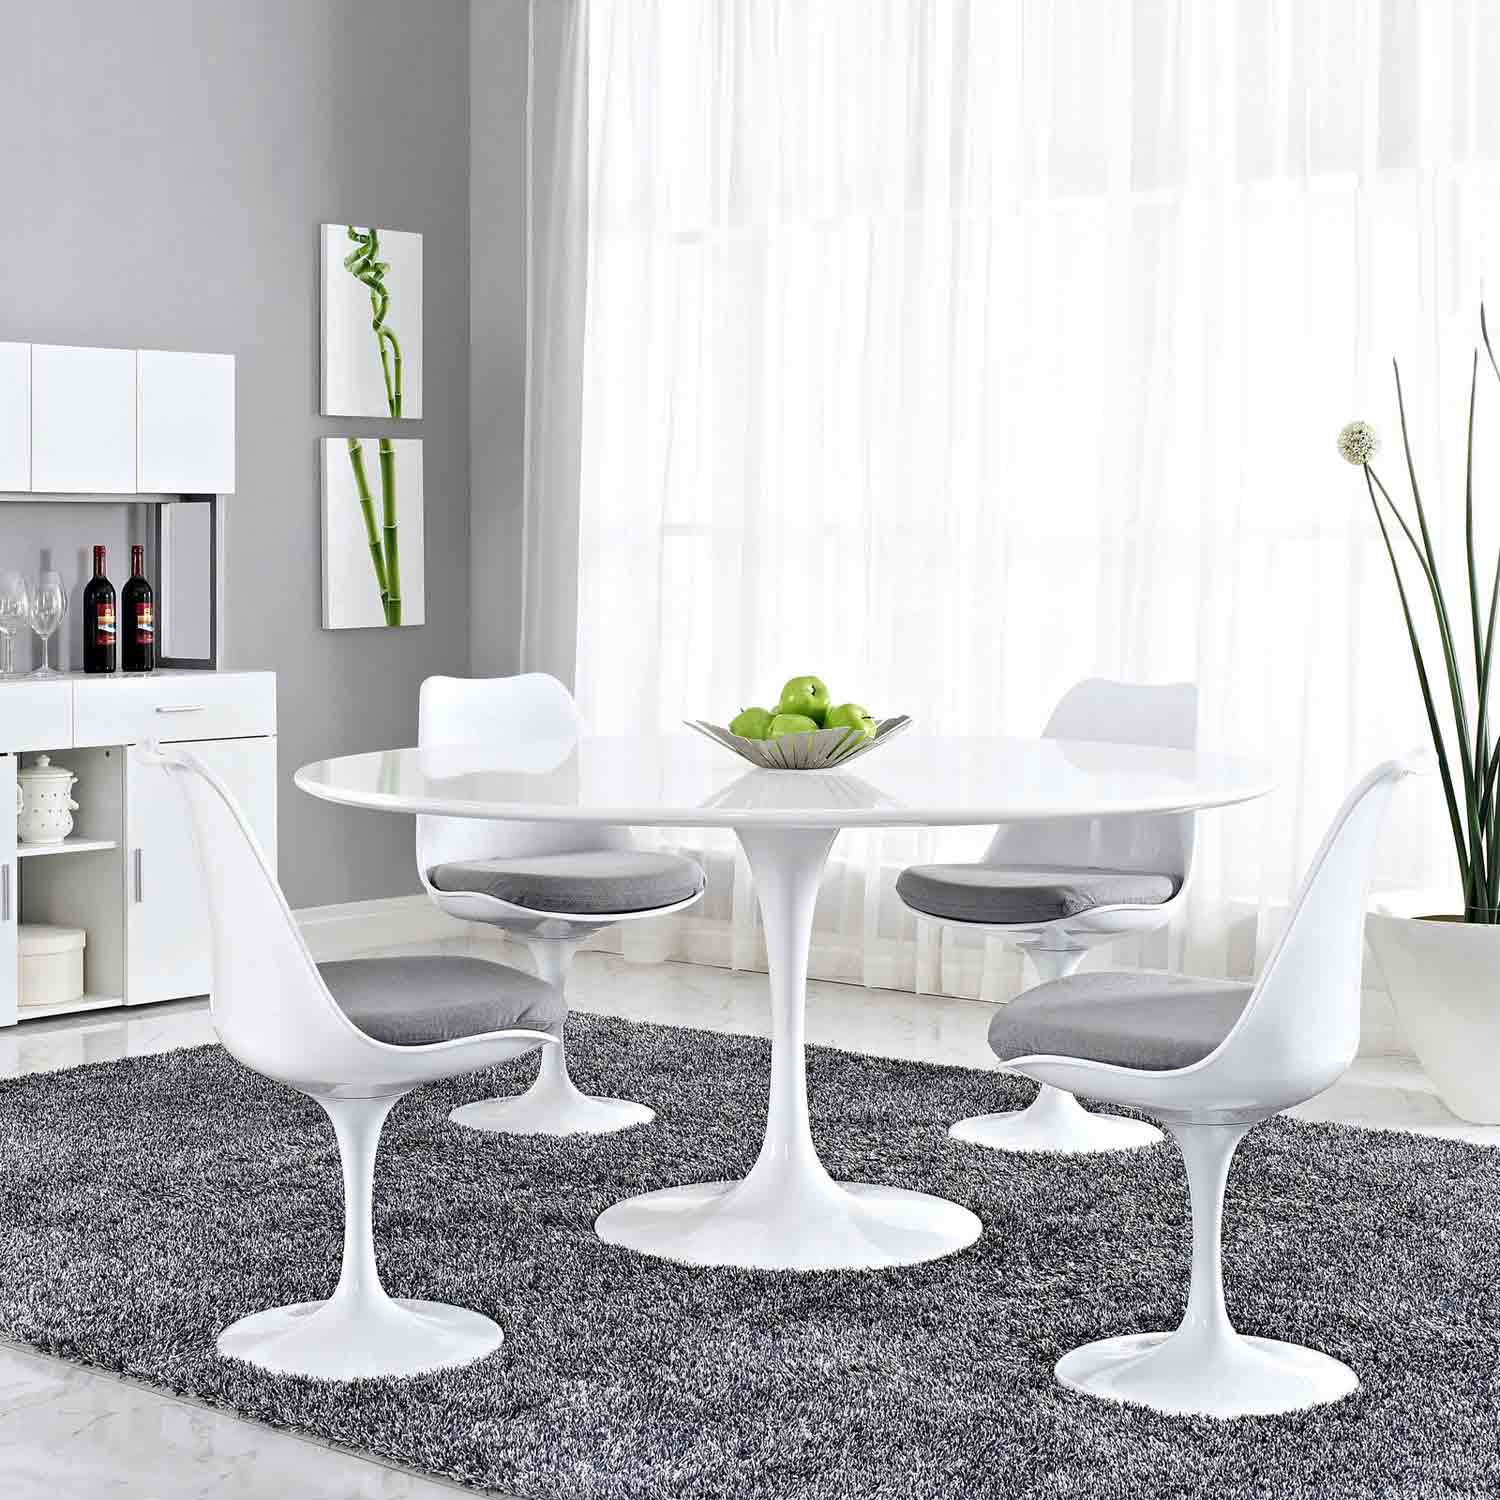 Modway Lippa 60 Wood Top Dining Table - White